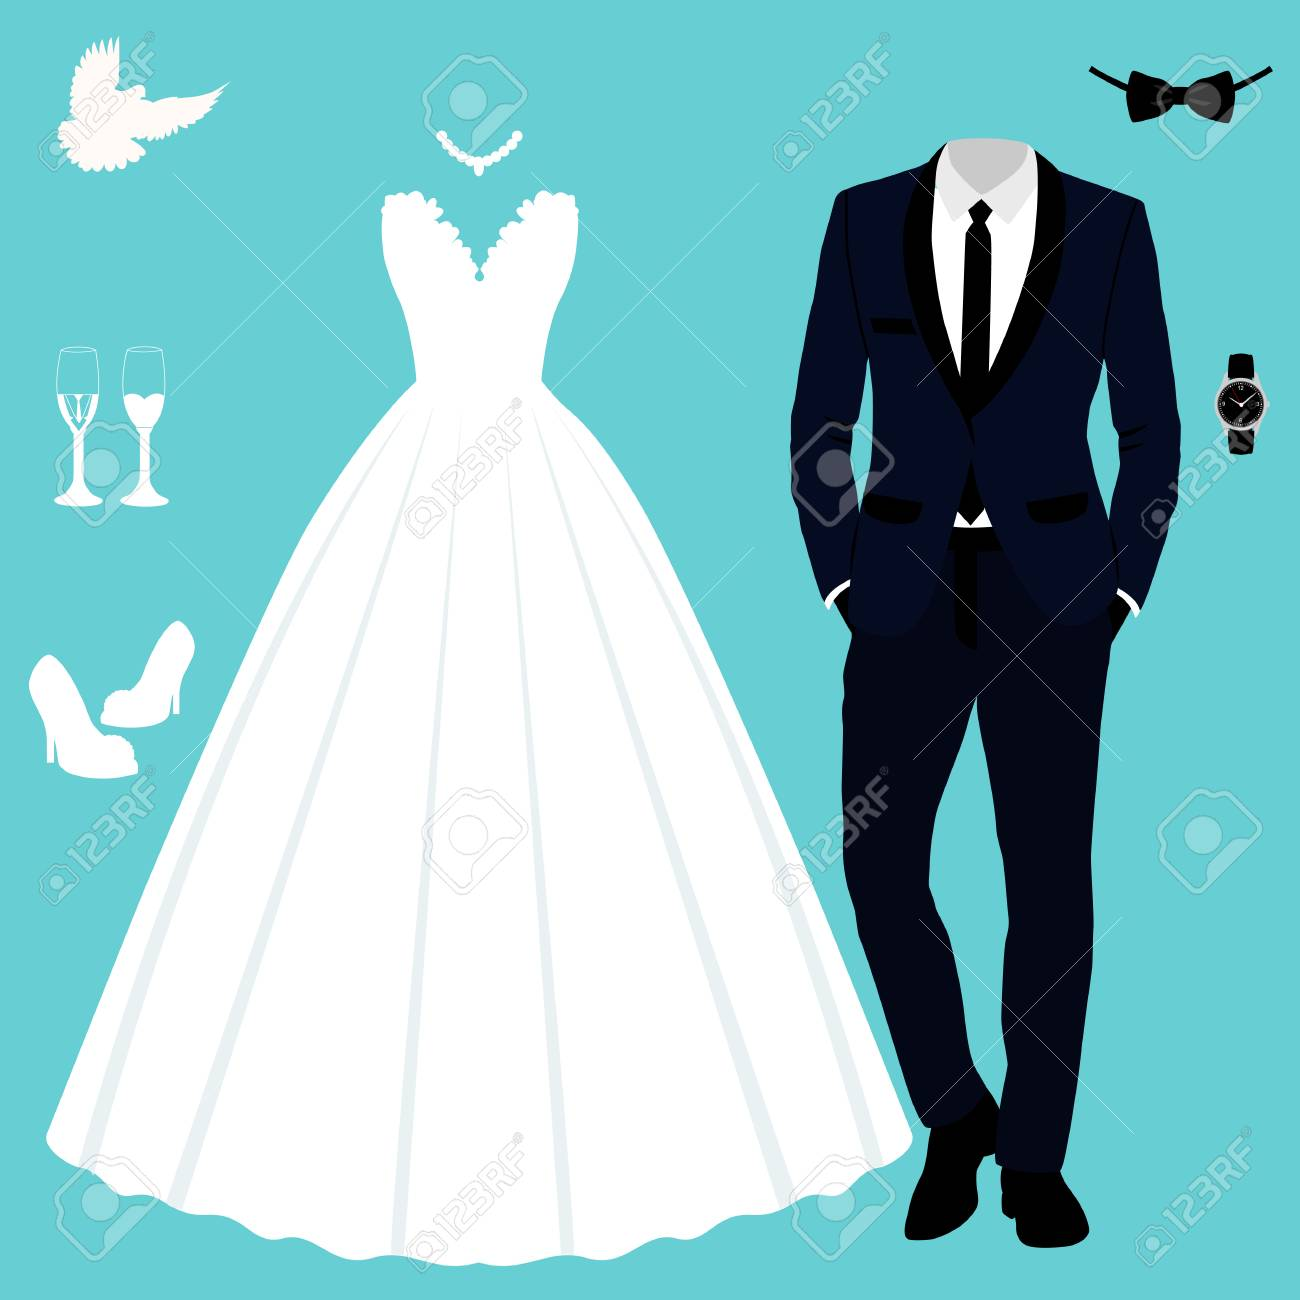 Beautiful Wedding Dress And Tuxedo Vector Illustration. Royalty Free ...